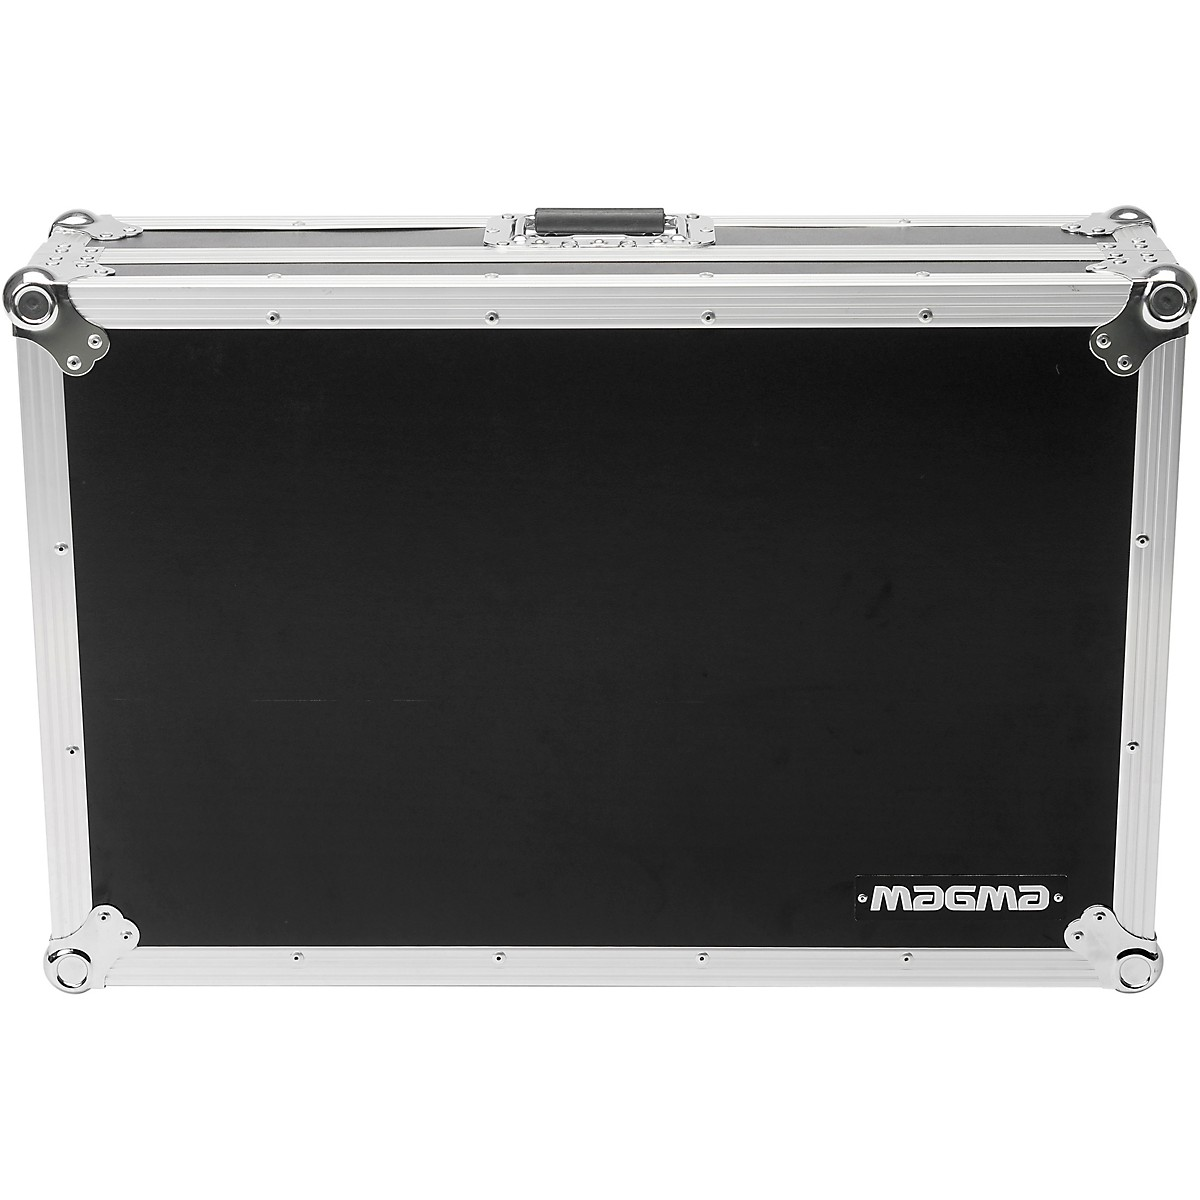 Magma Cases Pioneer XDJRX DJ Controller Workstation Case